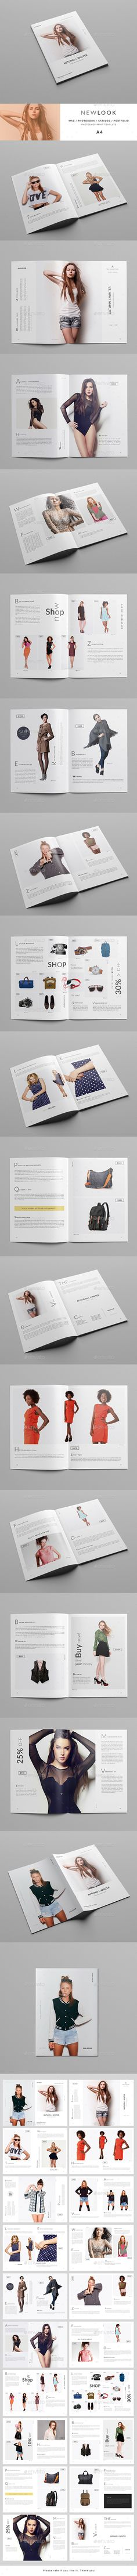 New Look / Fashion Catalogue & Magazine #booklet #brochure #catalog • Available here → http://graphicriver.net/item/new-look-fashion-catalogue-magazine/15458413?s_rank=150&ref=pxcr